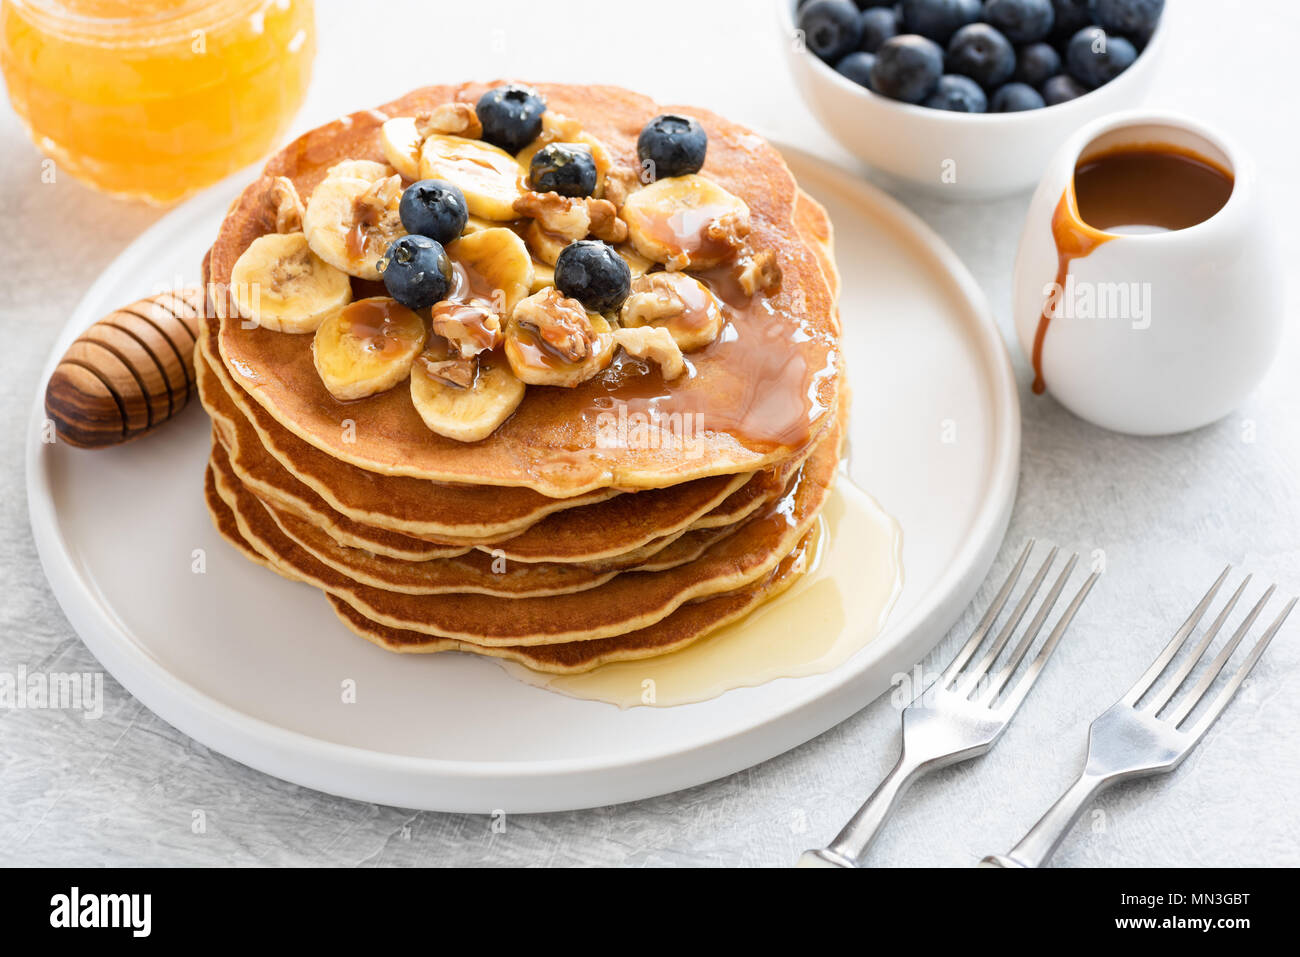 Stack of pancakes with banana, blueberries, walnuts, honey and caramel sauce on white plate. Closeup view. Breakfast pancakes with maple syrup - Stock Image